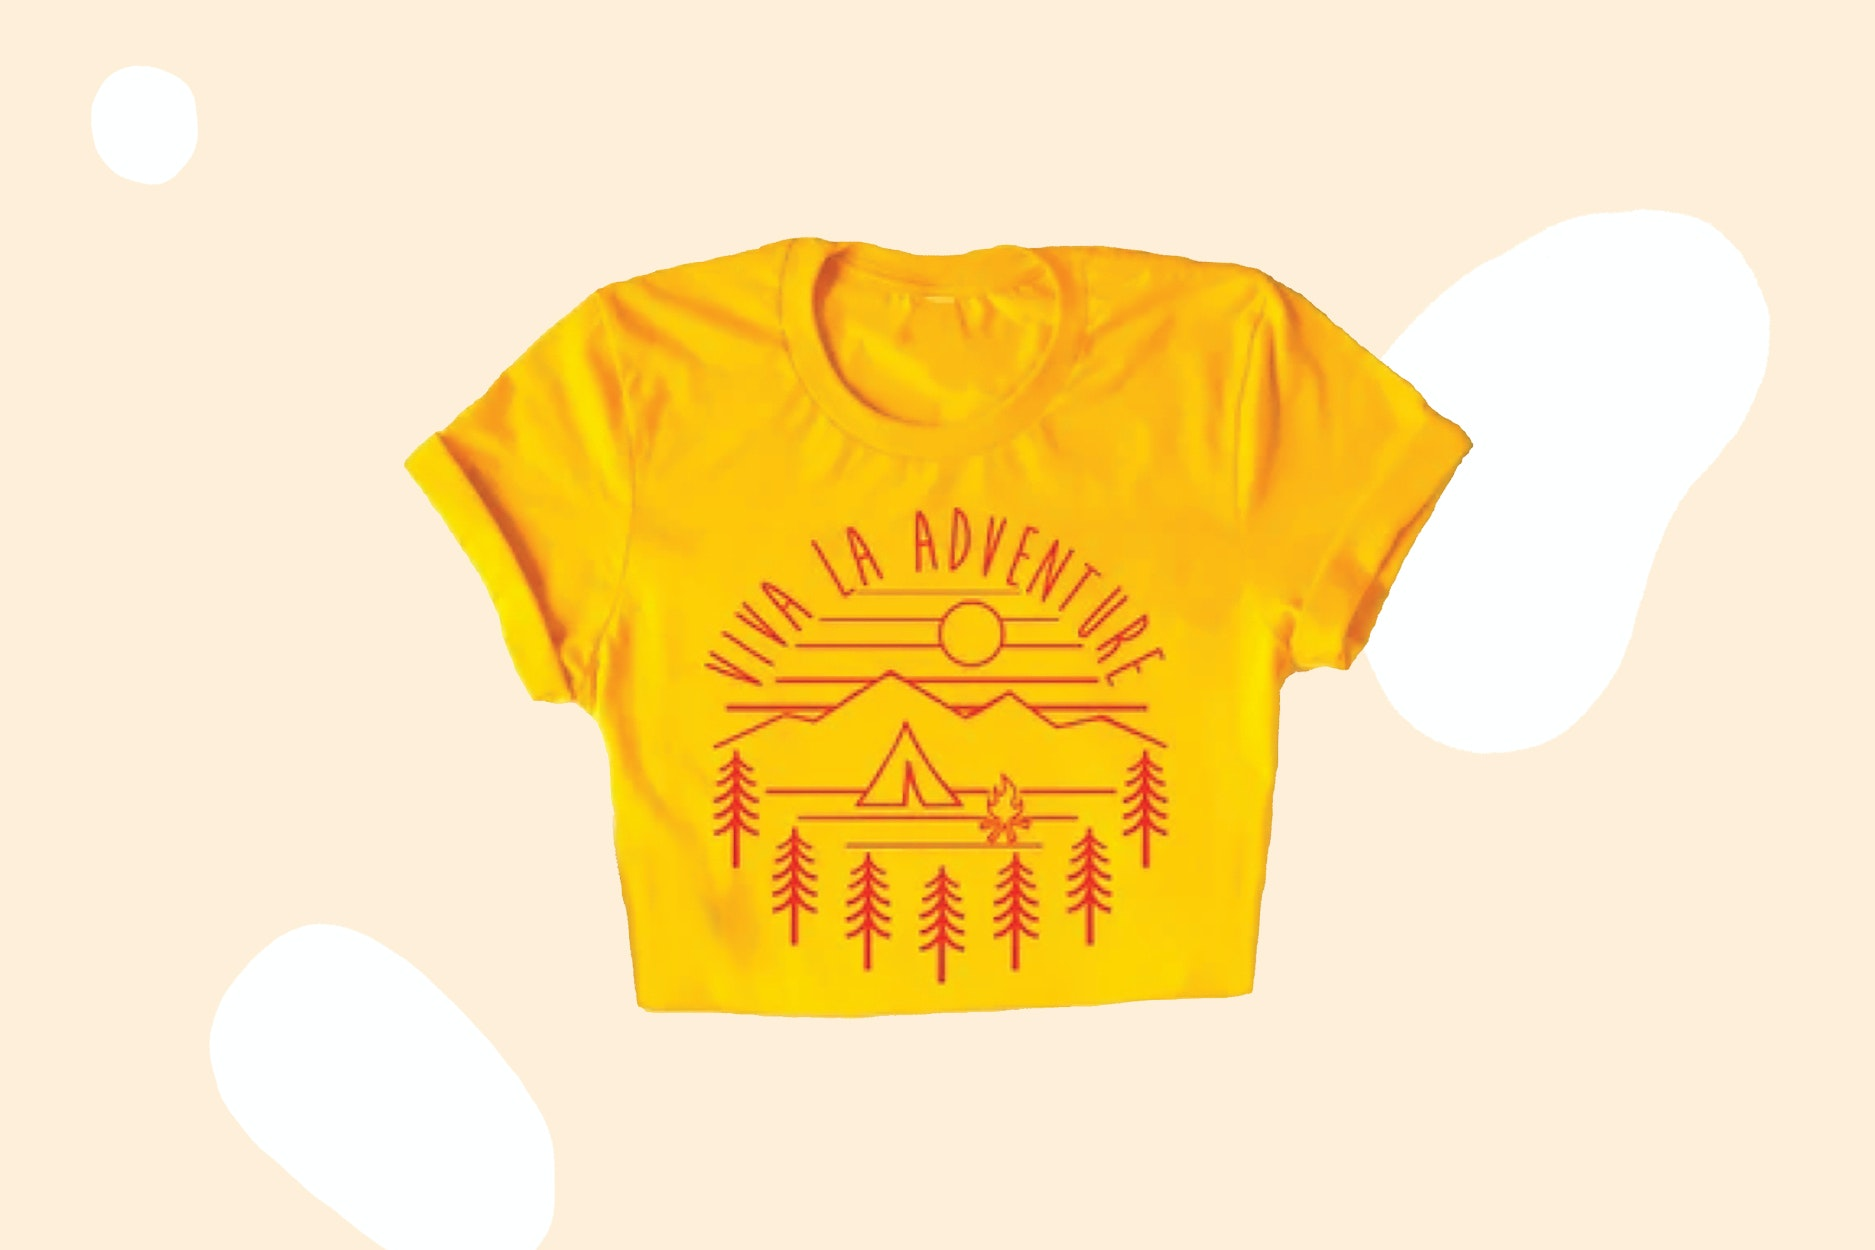 Alpenglow Apparel makes cozy T-shirts for all types of adventurers.